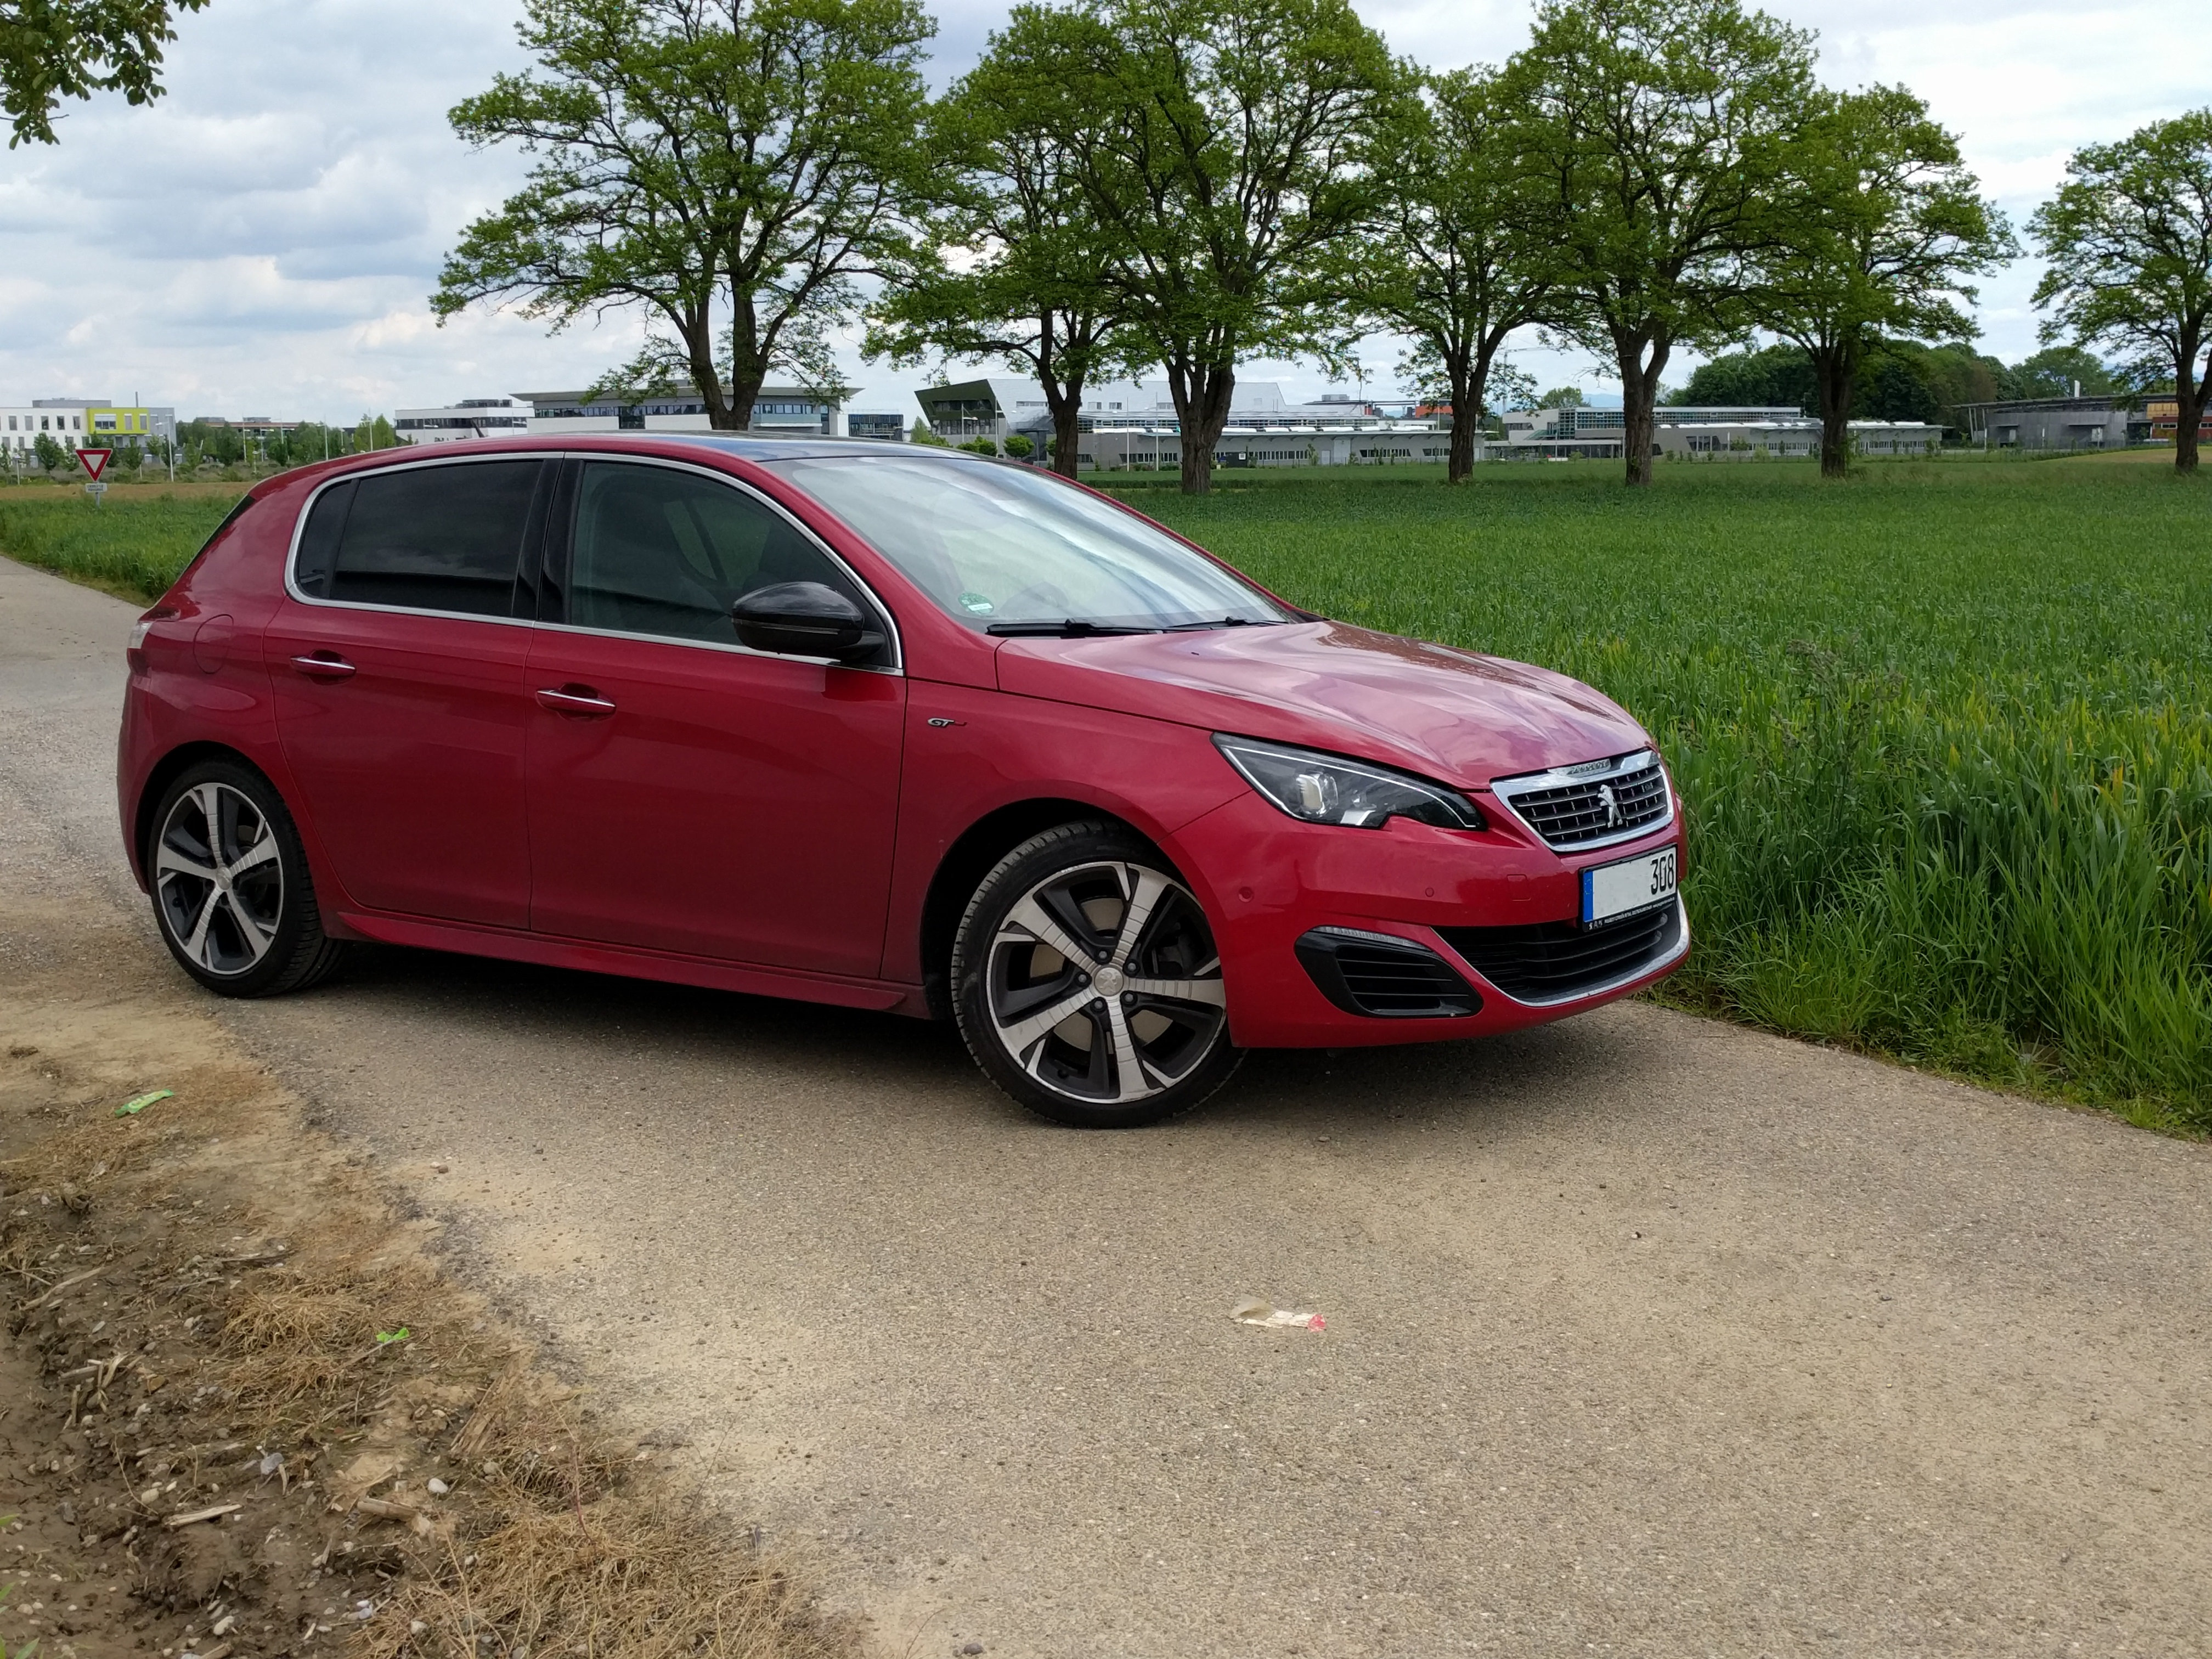 308 gt rouge hdi 180 pikasso peugeot 308 t9 2013 forum forum peugeot. Black Bedroom Furniture Sets. Home Design Ideas